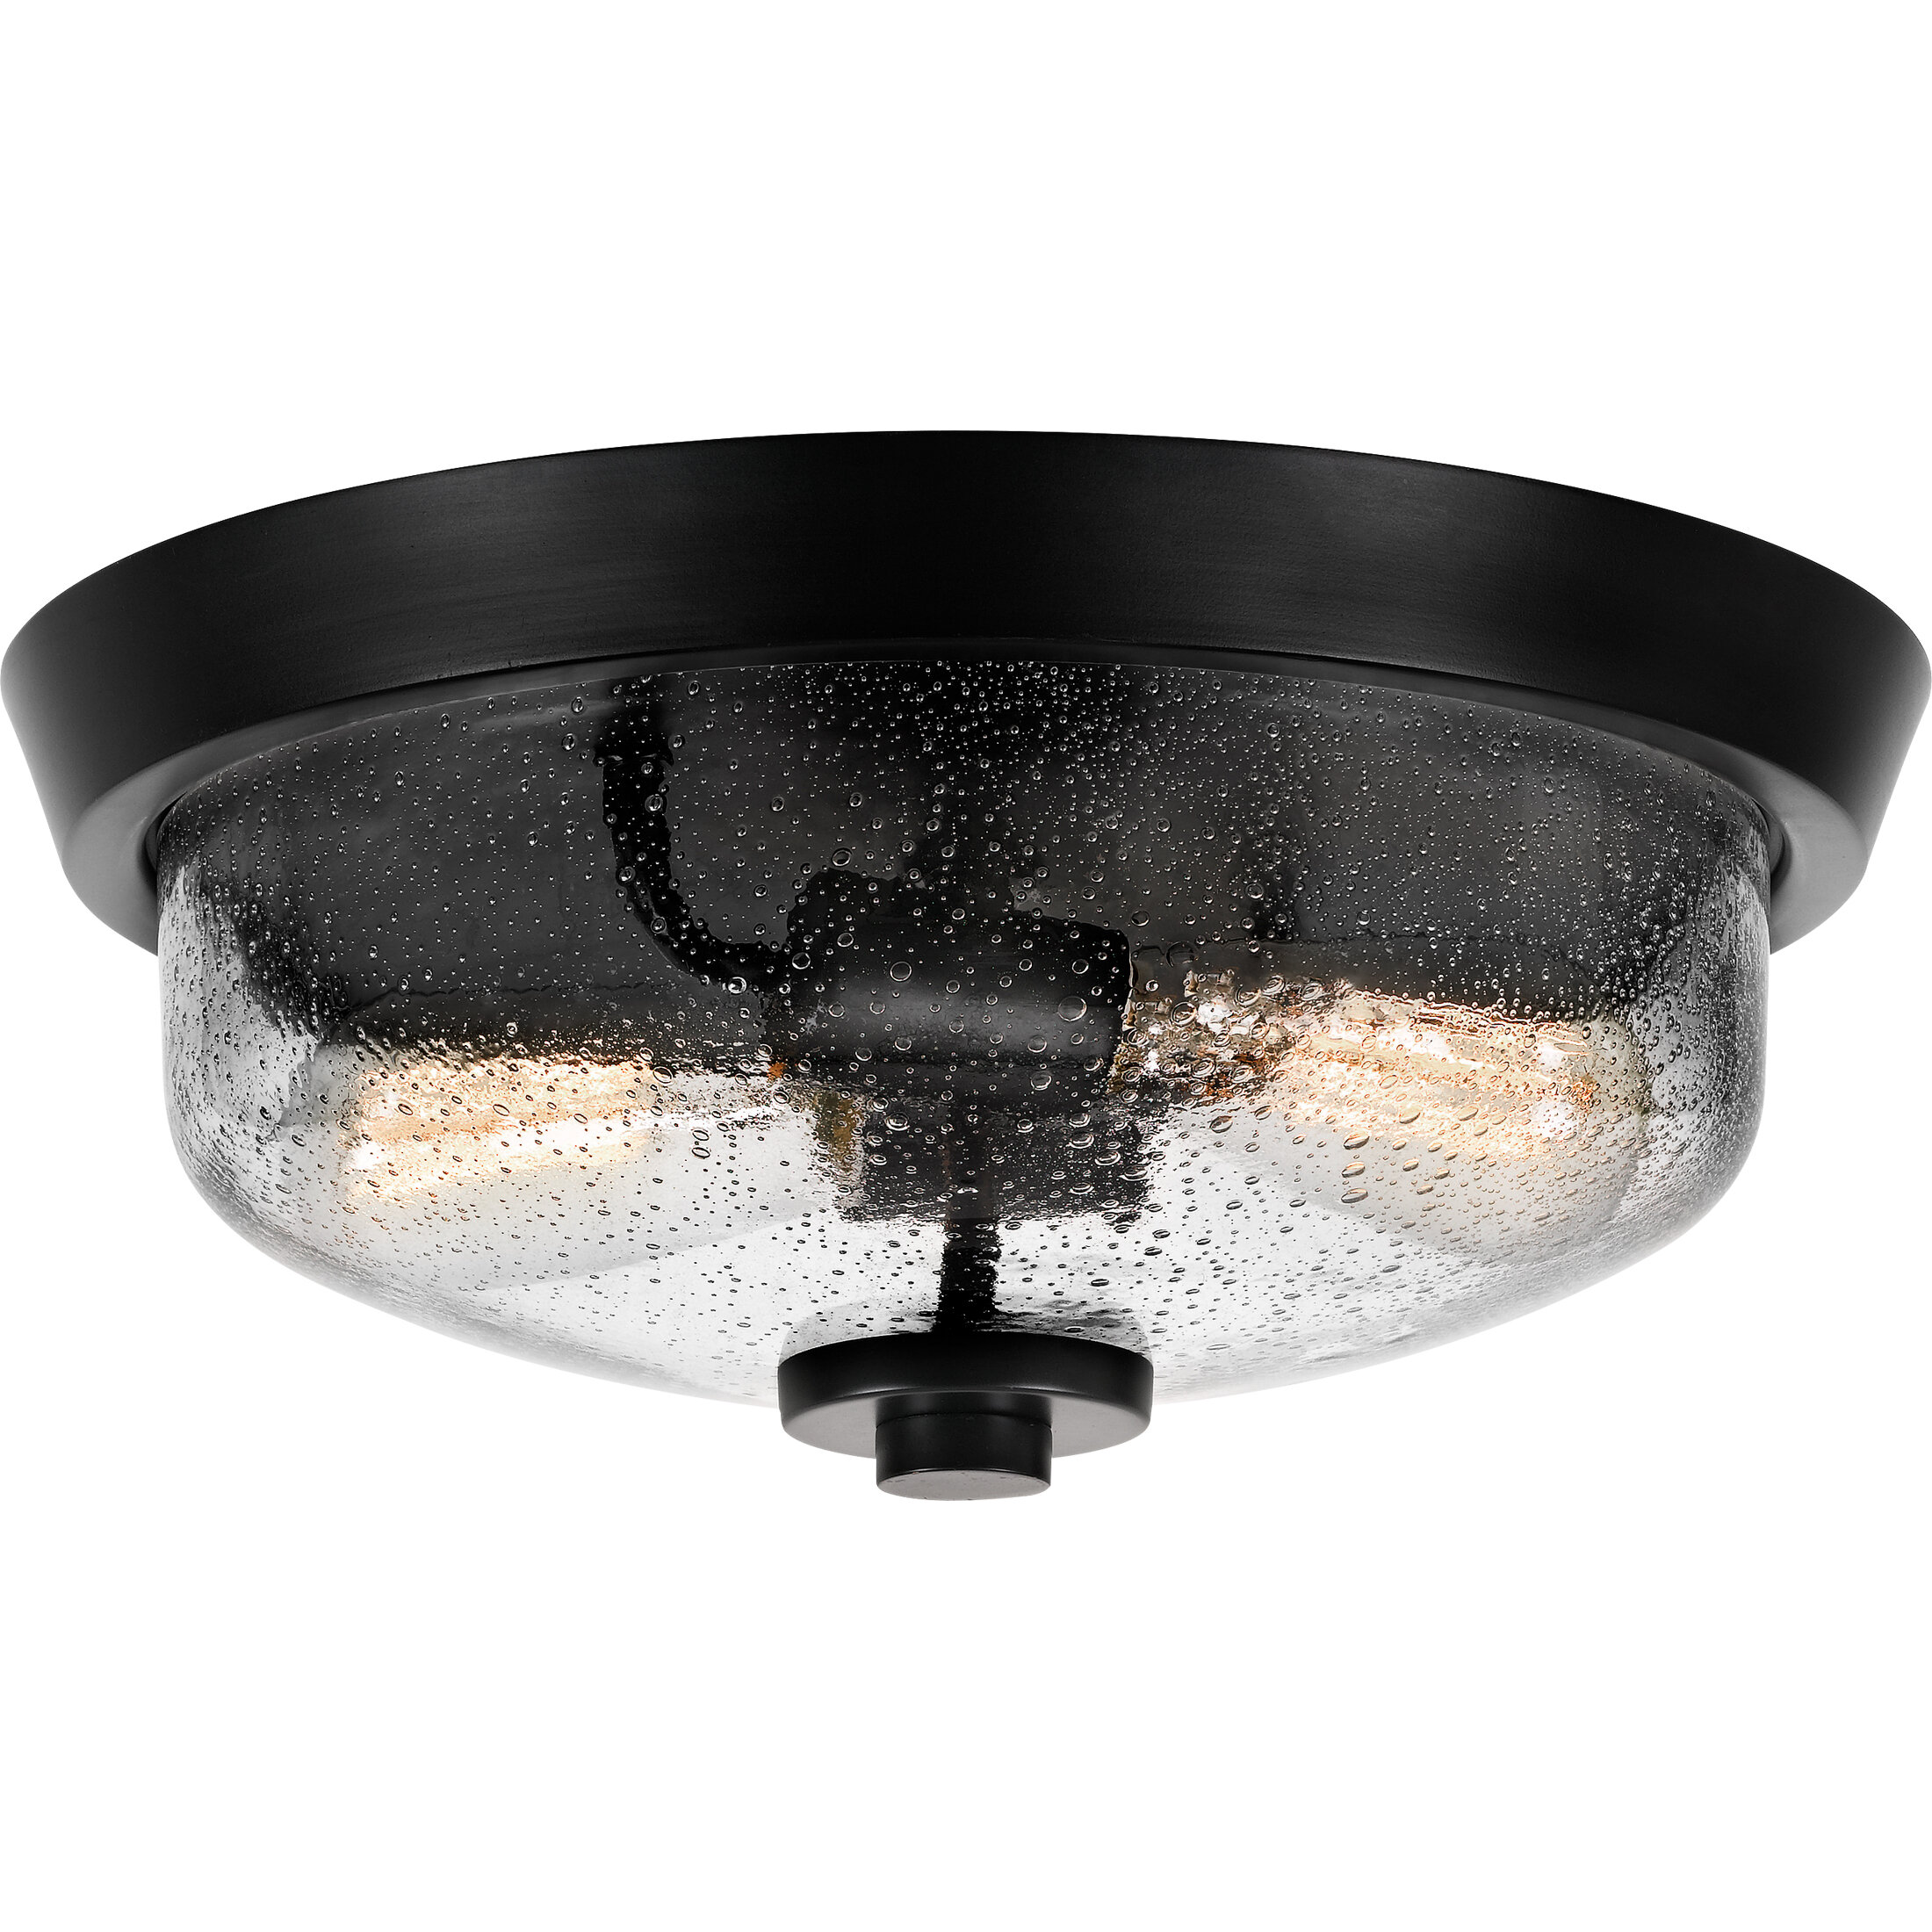 Brushed Nickel Clear Glass Shade Ceiling Lights You Ll Love In 2021 Wayfair